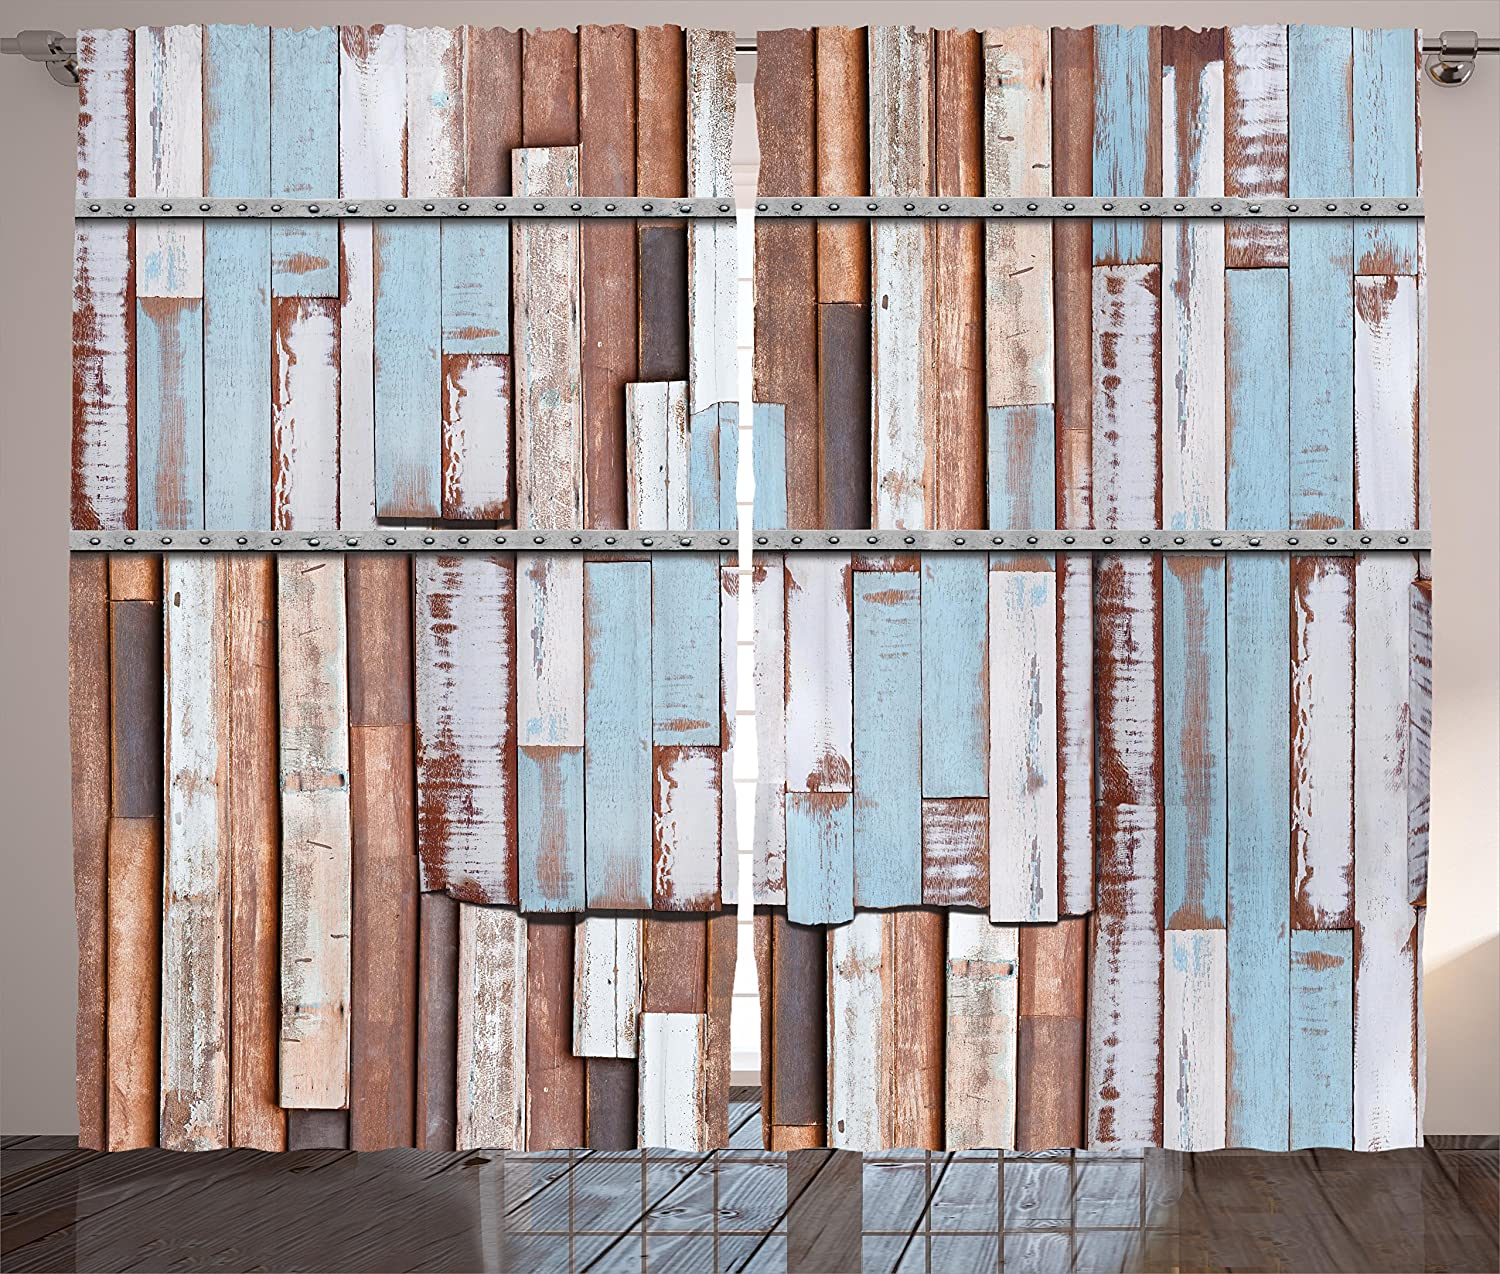 Ambesonne Rustic Curtains, Nautical Long Wooden Planks Tree Designs on with Rusty Screws Art Print, Living Room Bedroom Window Drapes 2 Panel Set, 108